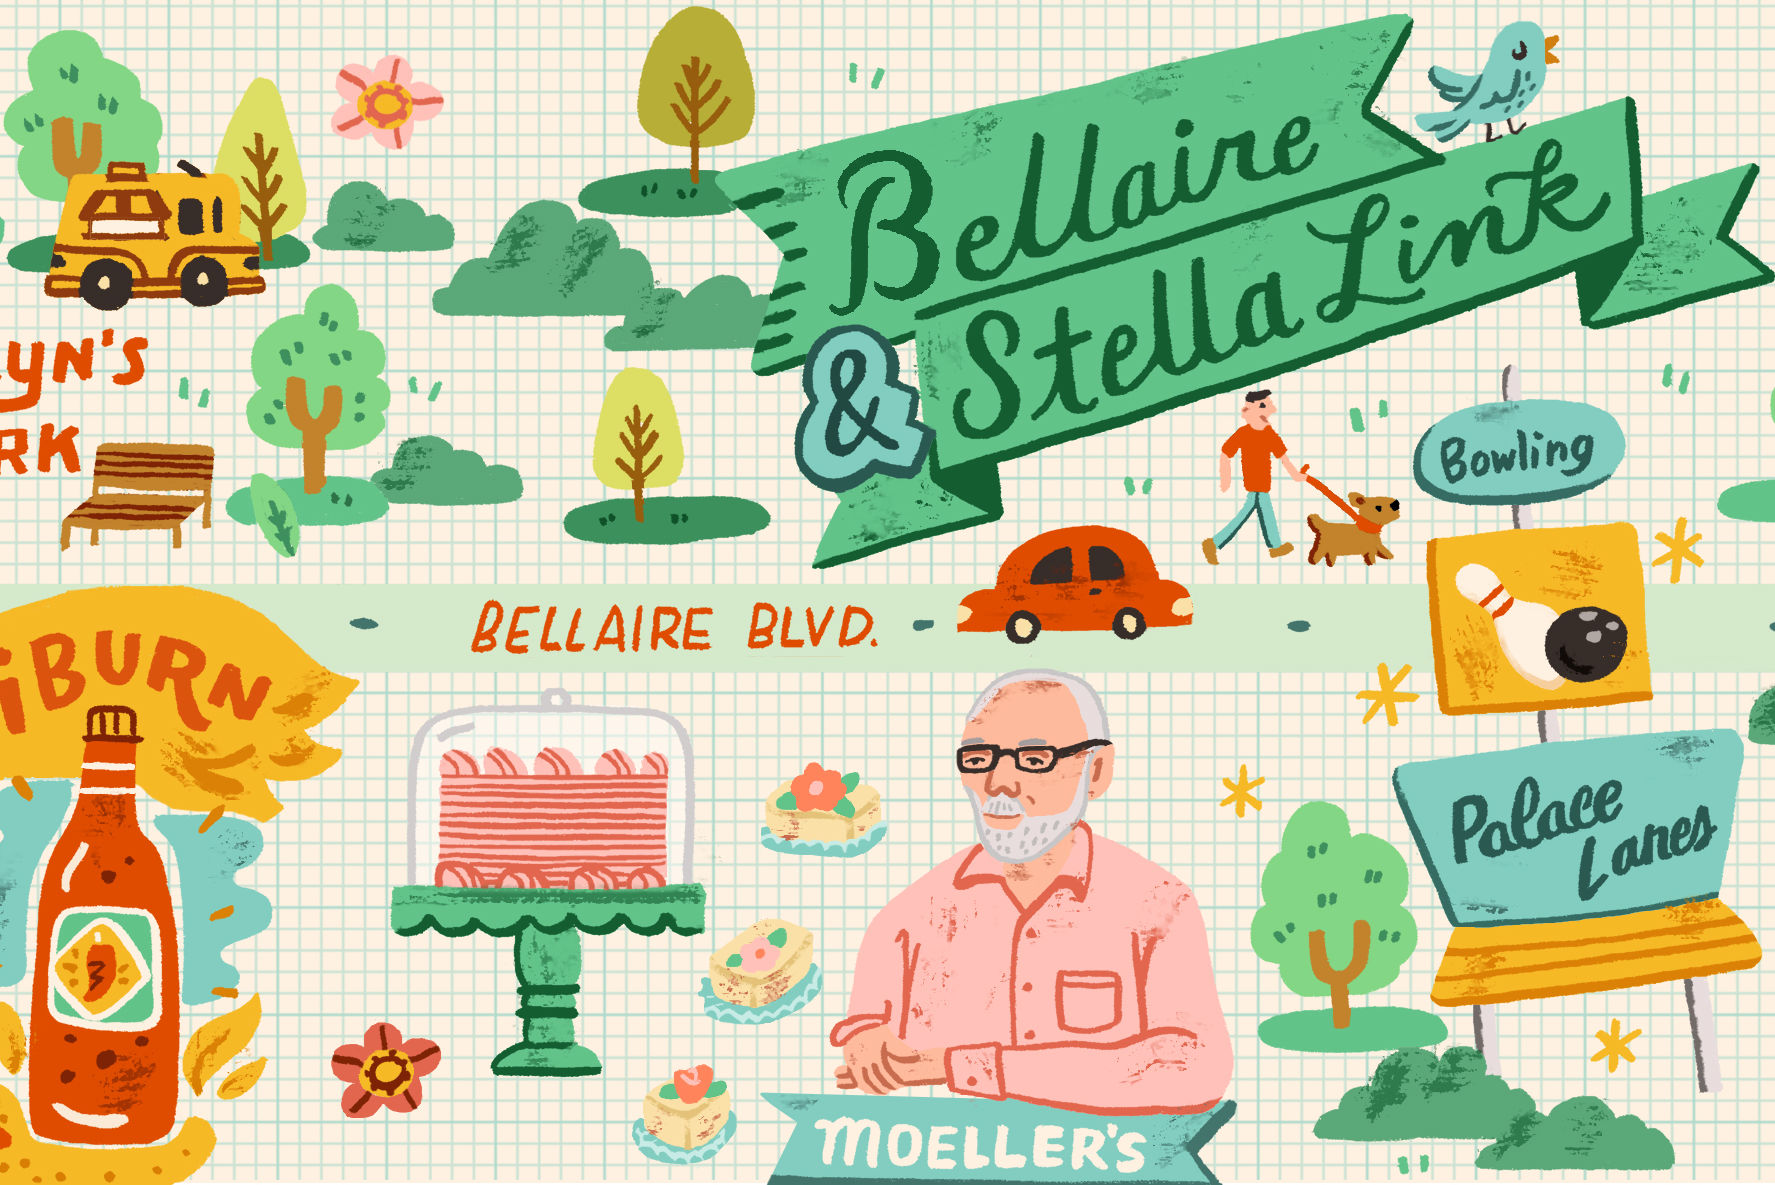 Houstonia bellaire spread final new.jpg xqx09j